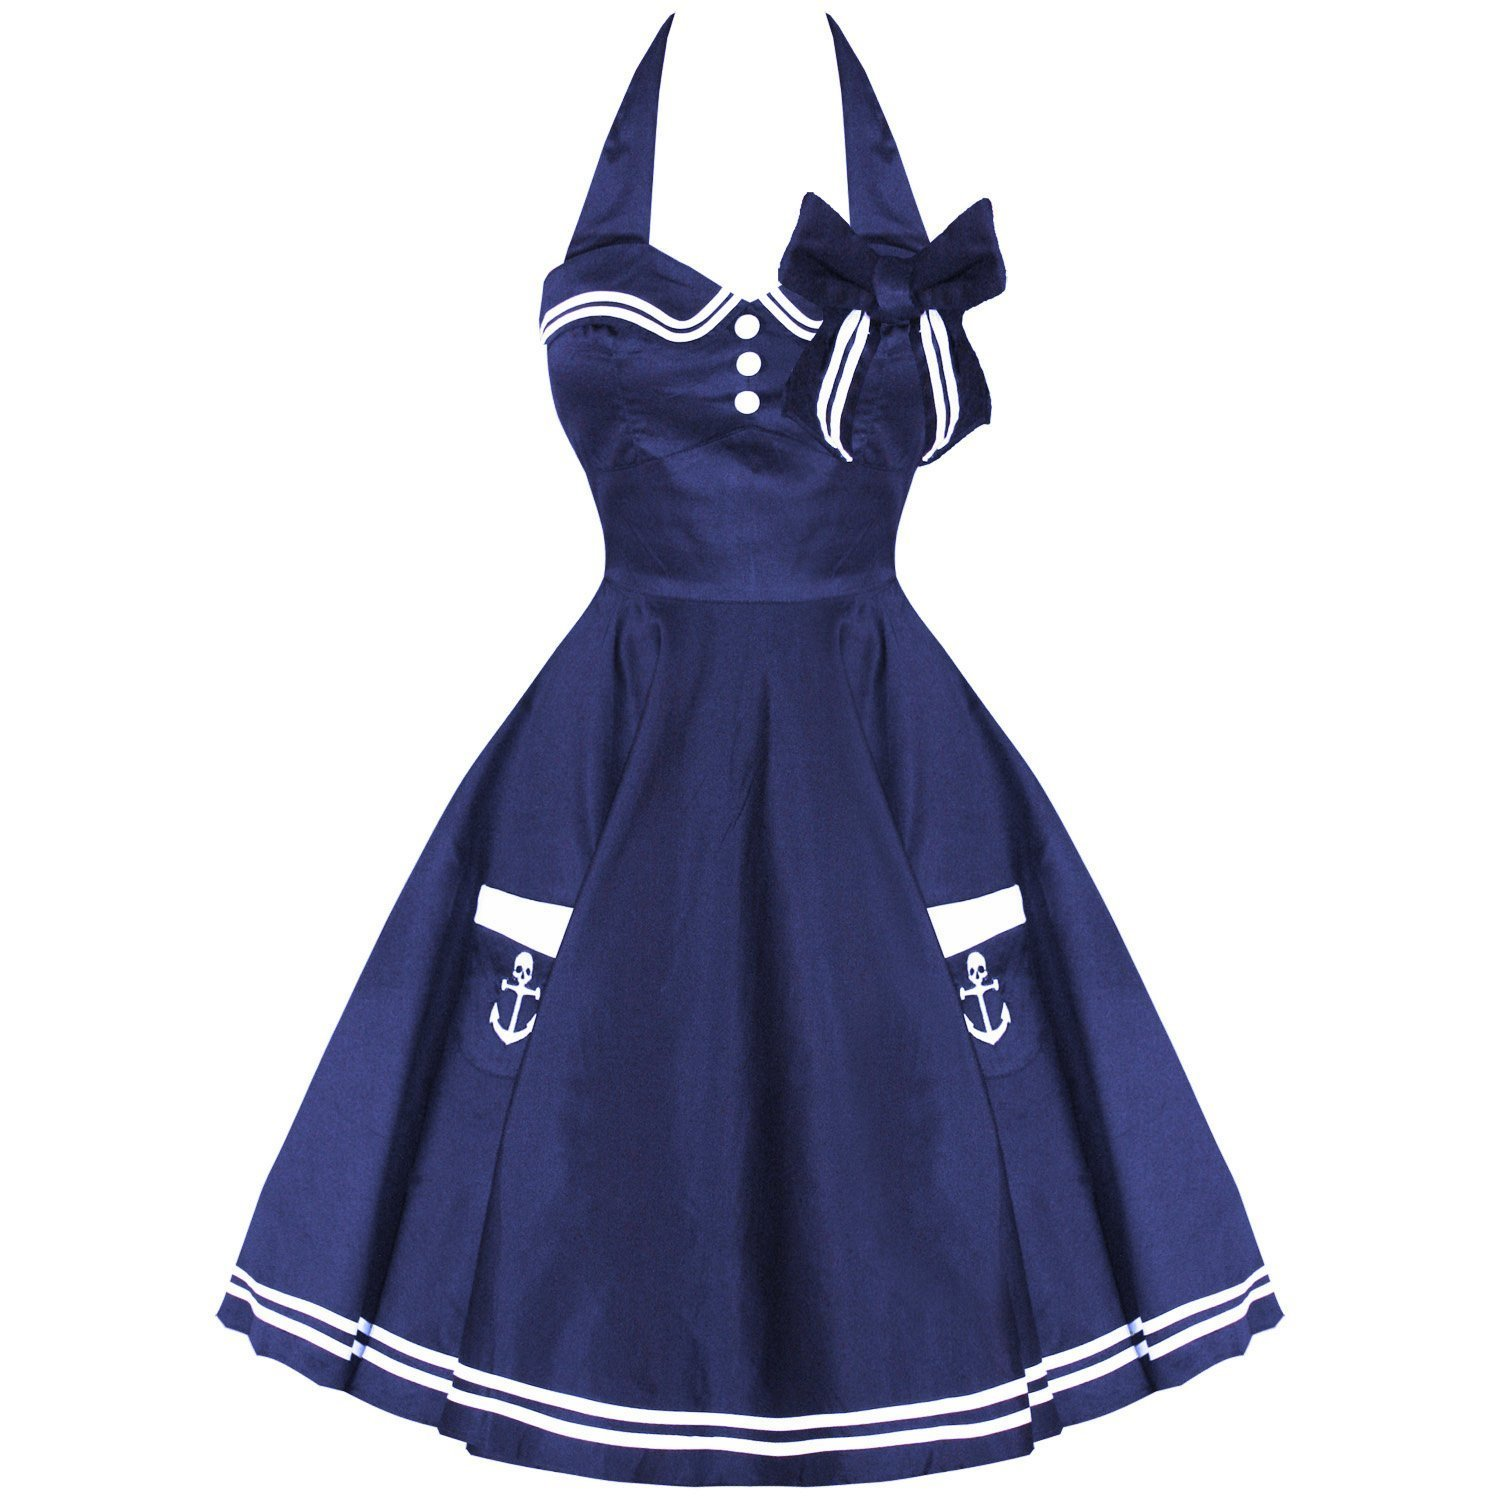 Motley Sailor 50s Swing Dress